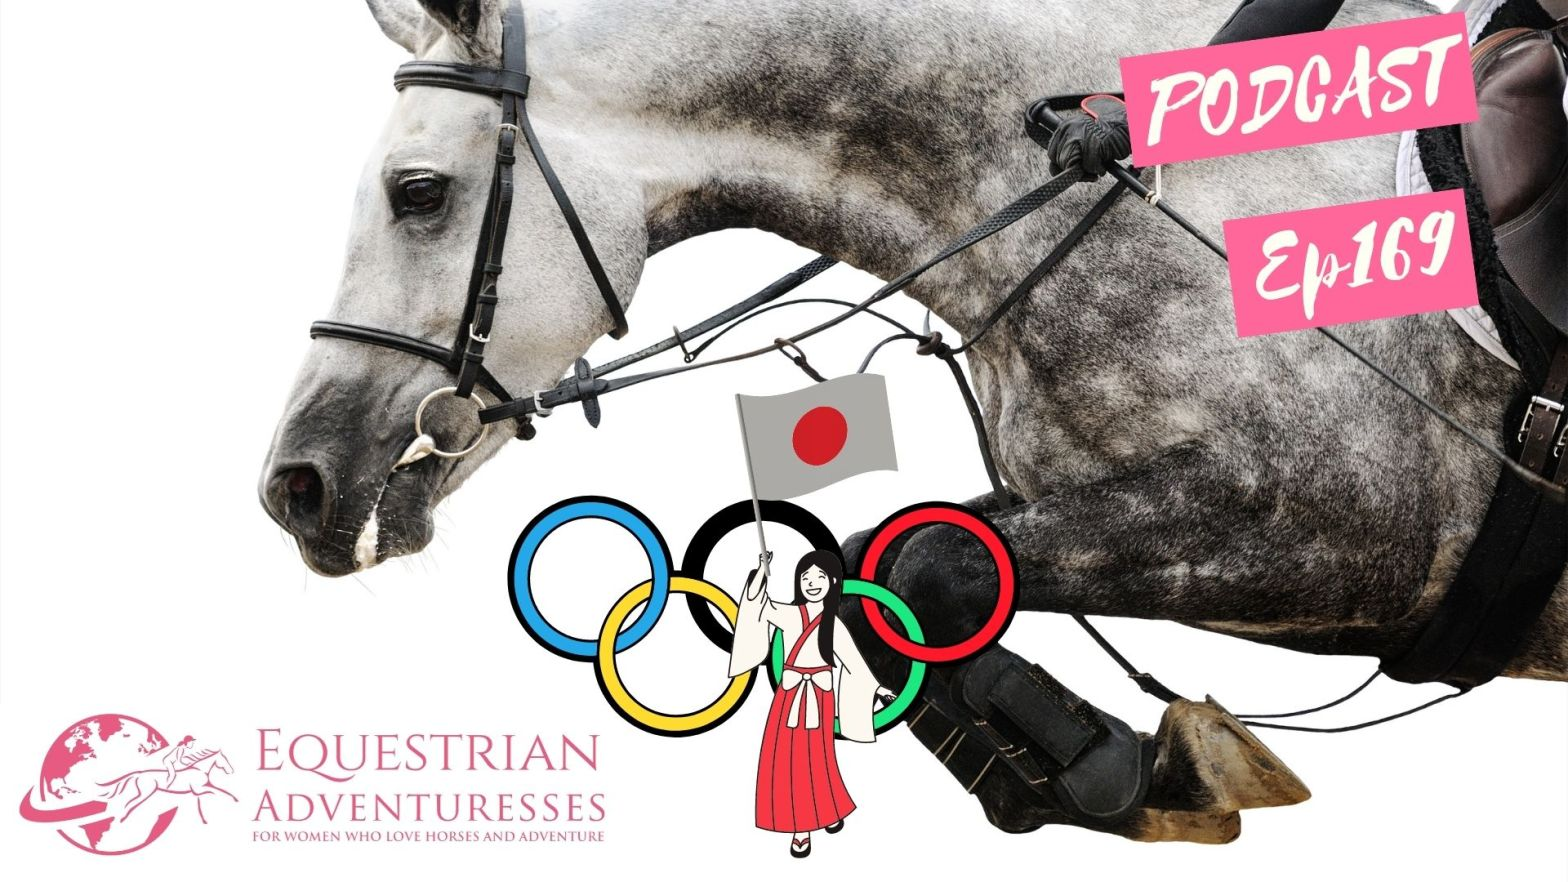 Equestrian Adventuresses Travel and Horse Podcast Ep 169 - Equestrian Olympics Tokyo 2020